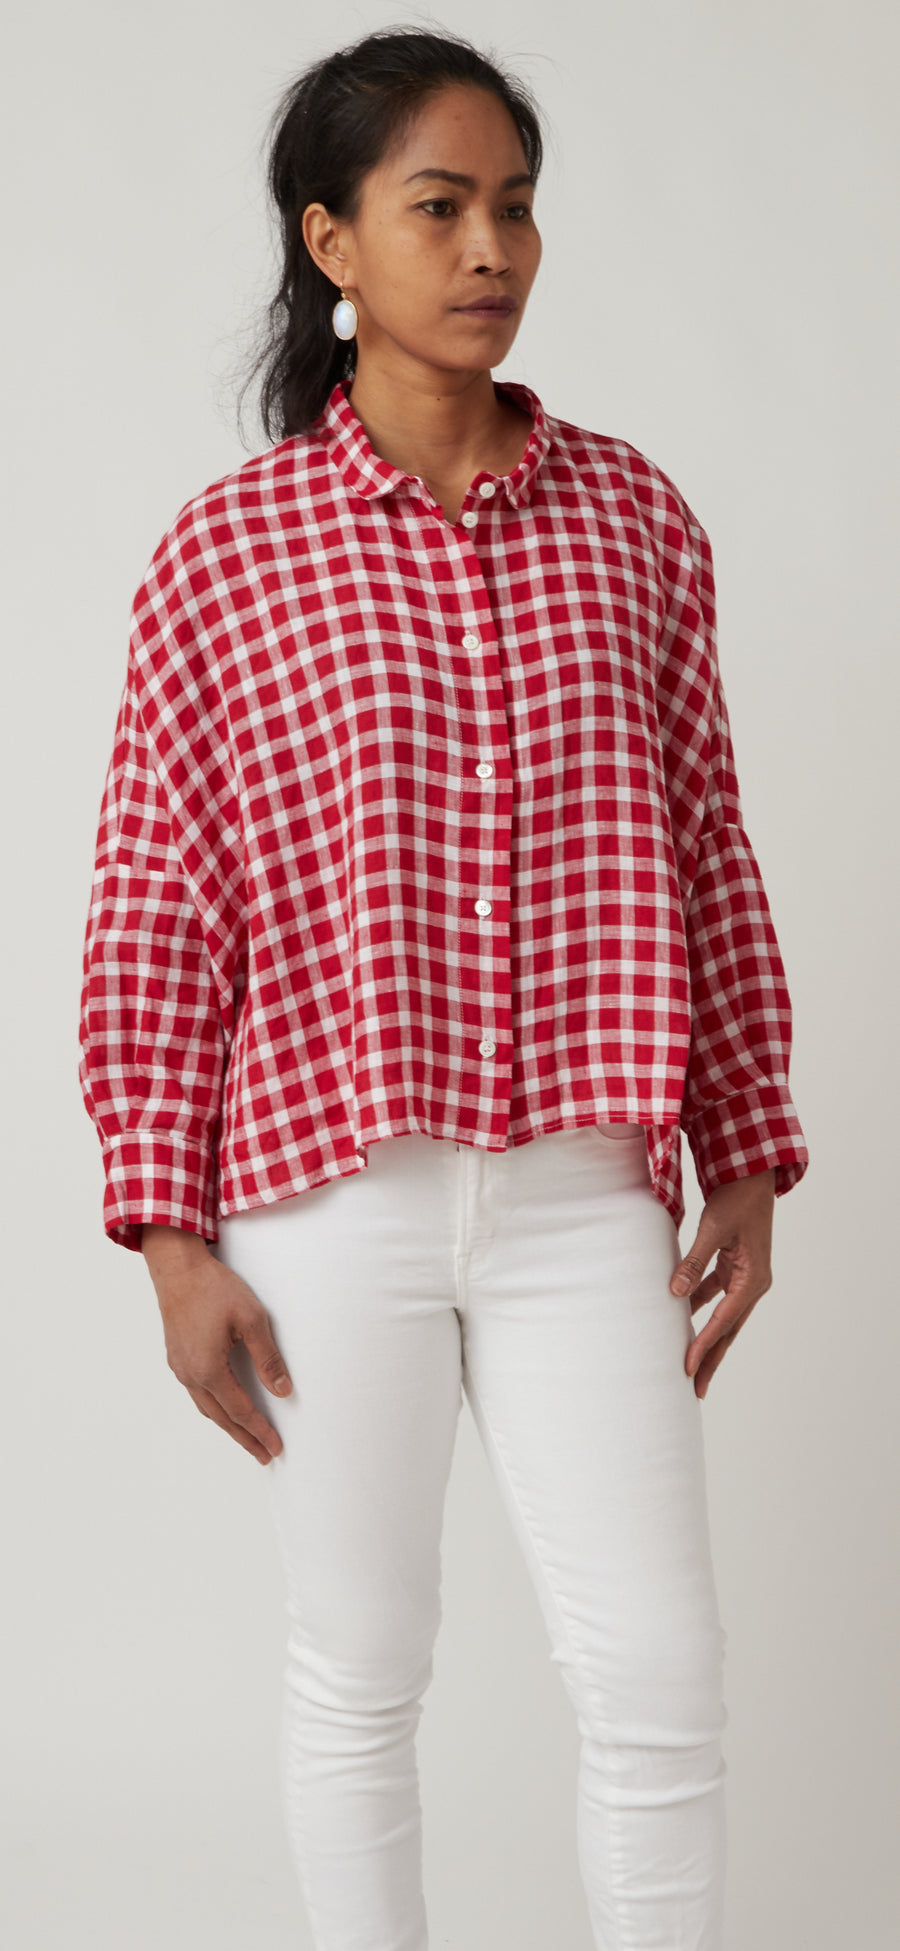 Gallego Supra Gingham Top